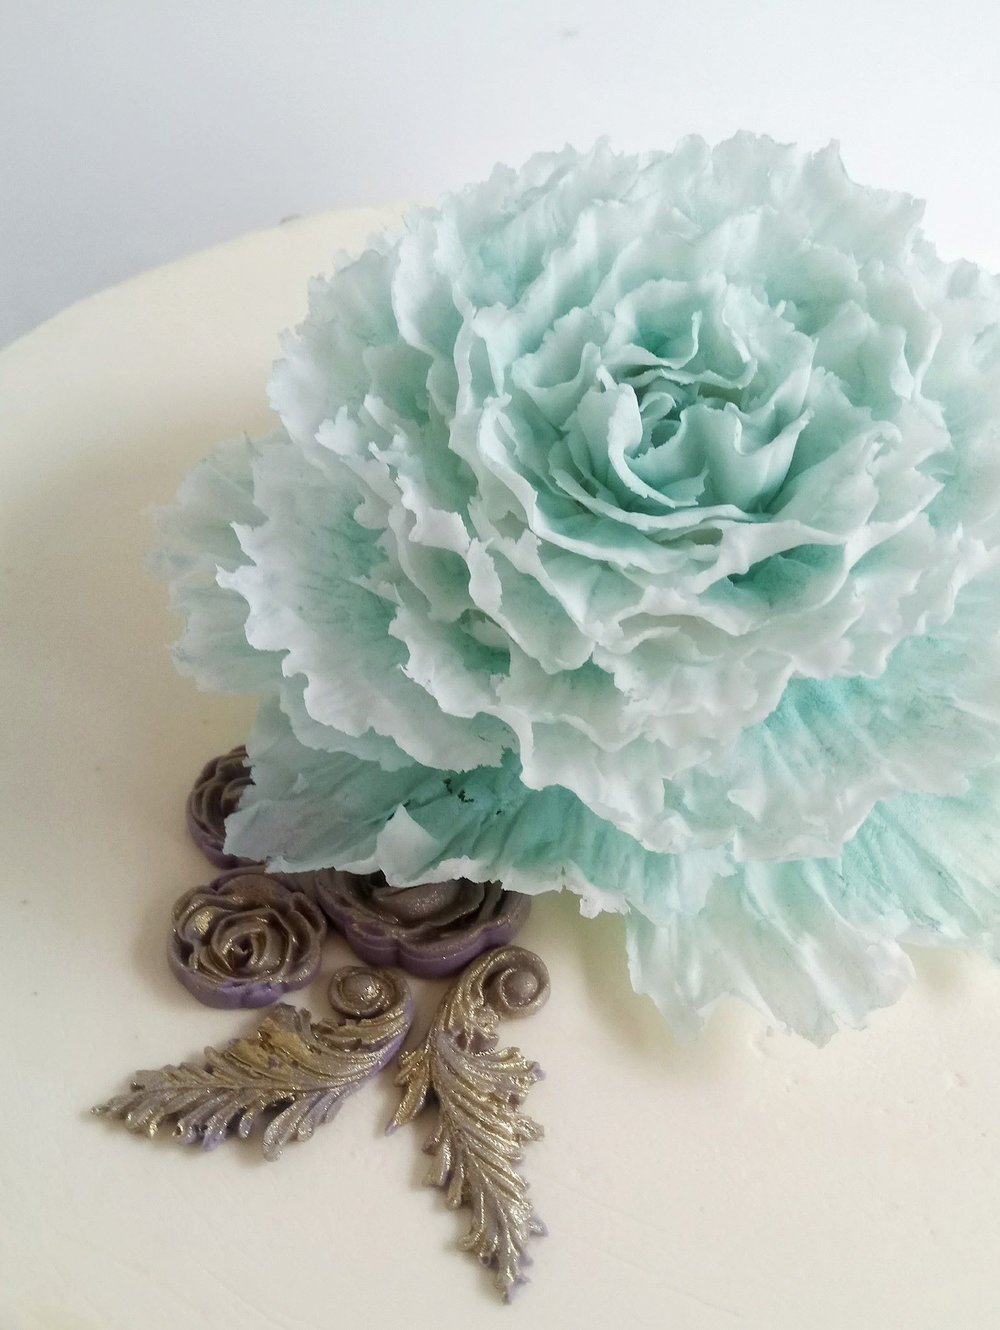 Rebecca Jane Sugar Art - large ruffled blue sugar peony